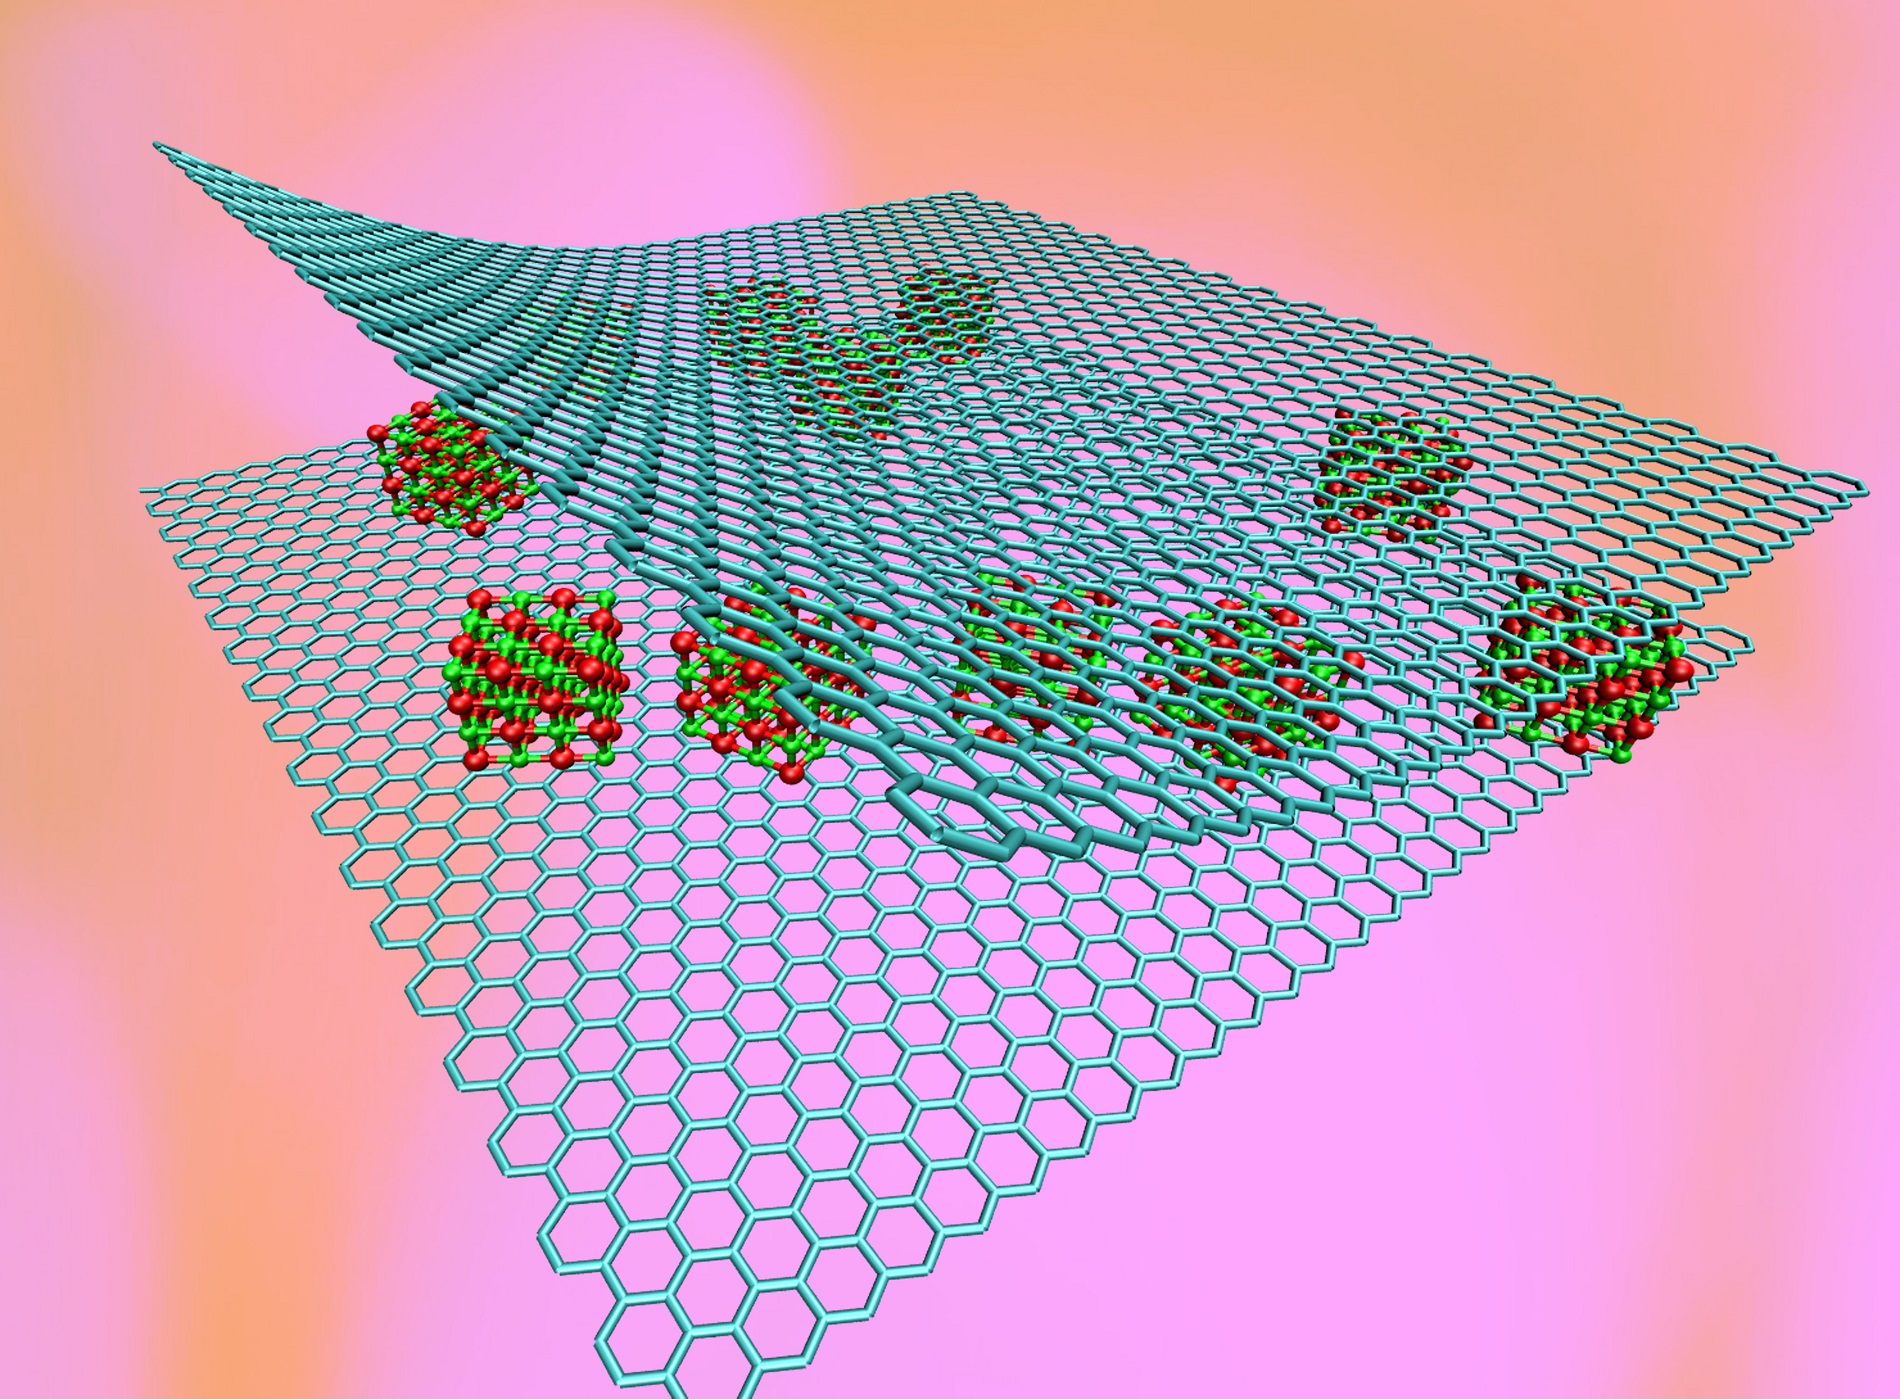 Nanoclusters of magnesium oxide sandwiched between layers of graphene